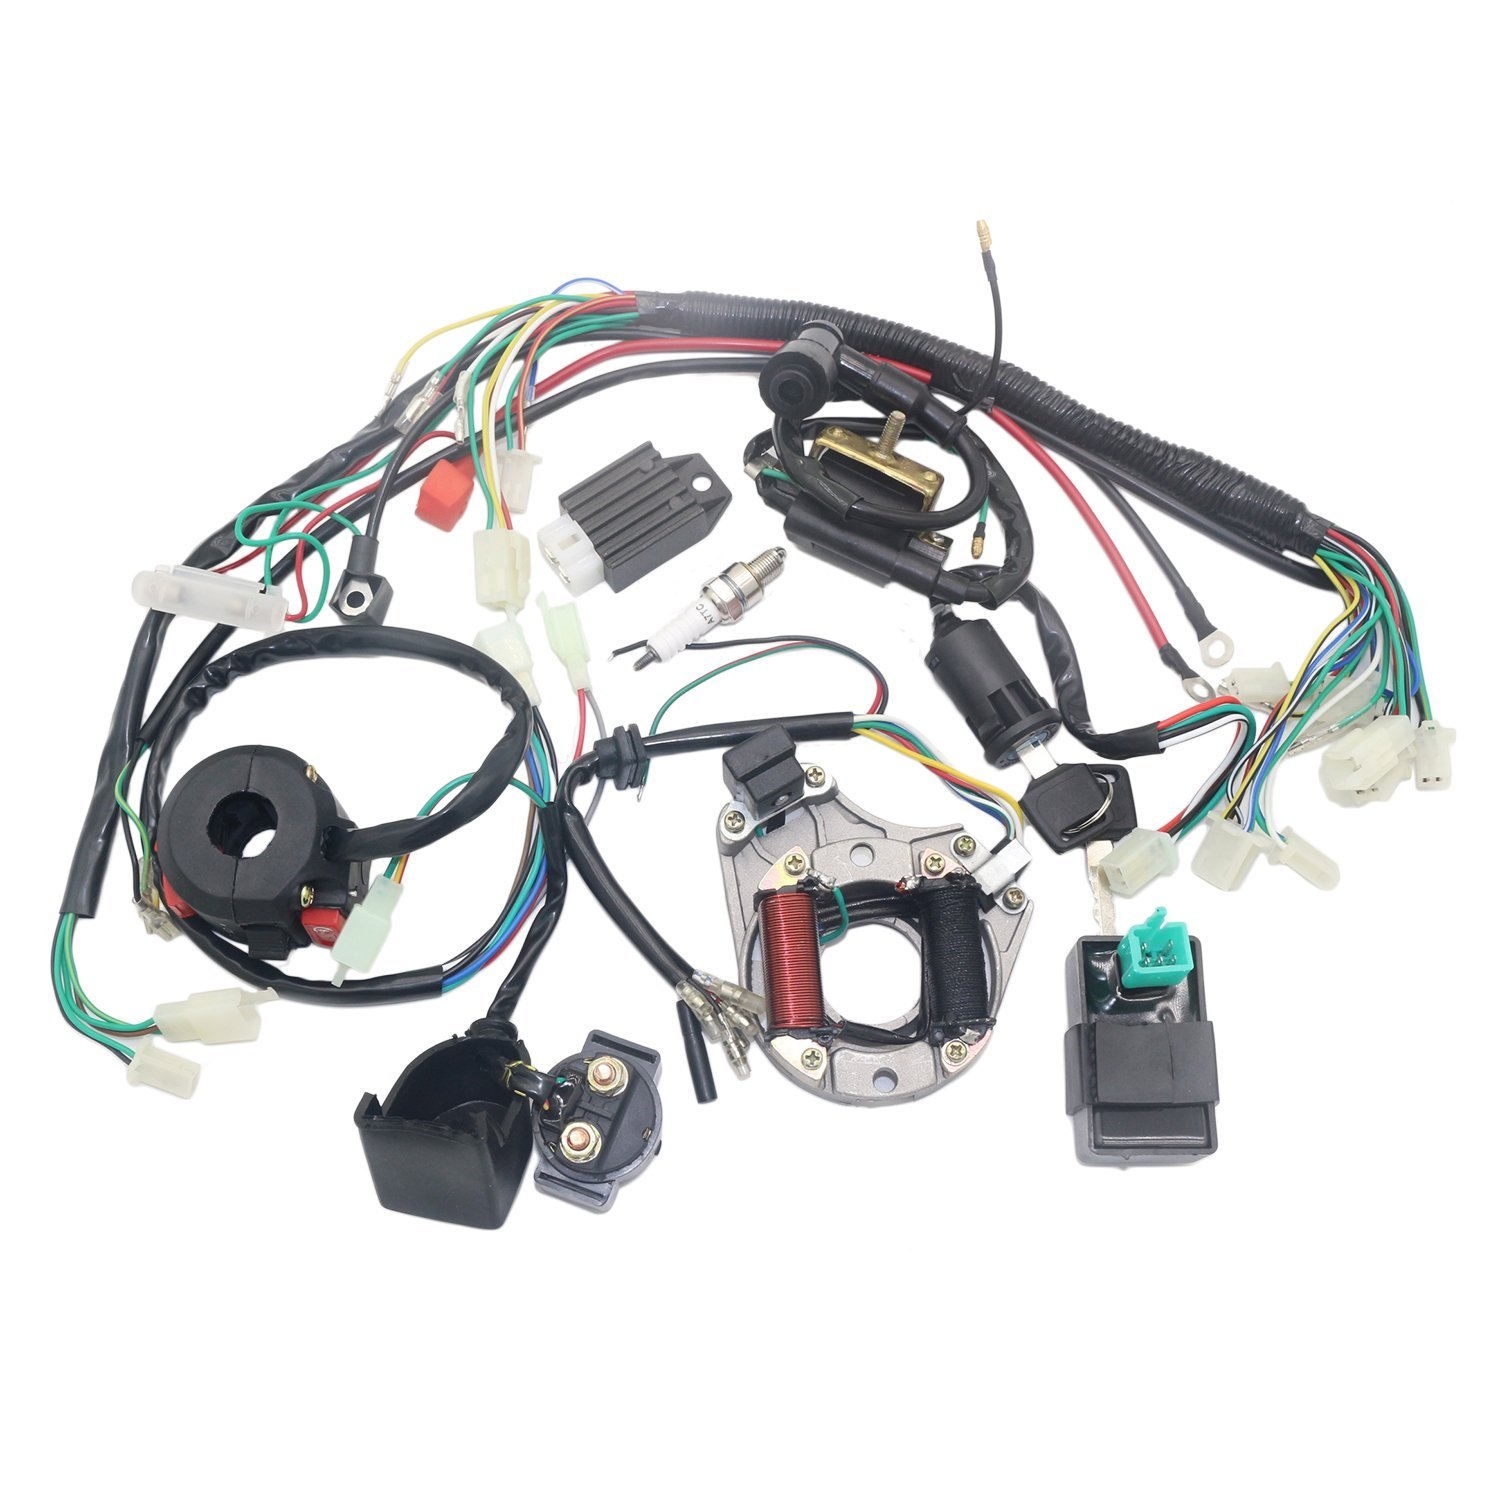 OTOHANS AUTOMOTIVE Complete Electric Stator Engine Wiring Harness Loom with Full Copper Wire for 50cc 70cc 90cc 110cc 125cc Pit Quad Dirt Bike taotao ATV Dune Buggy Go Karts 4 wheelers